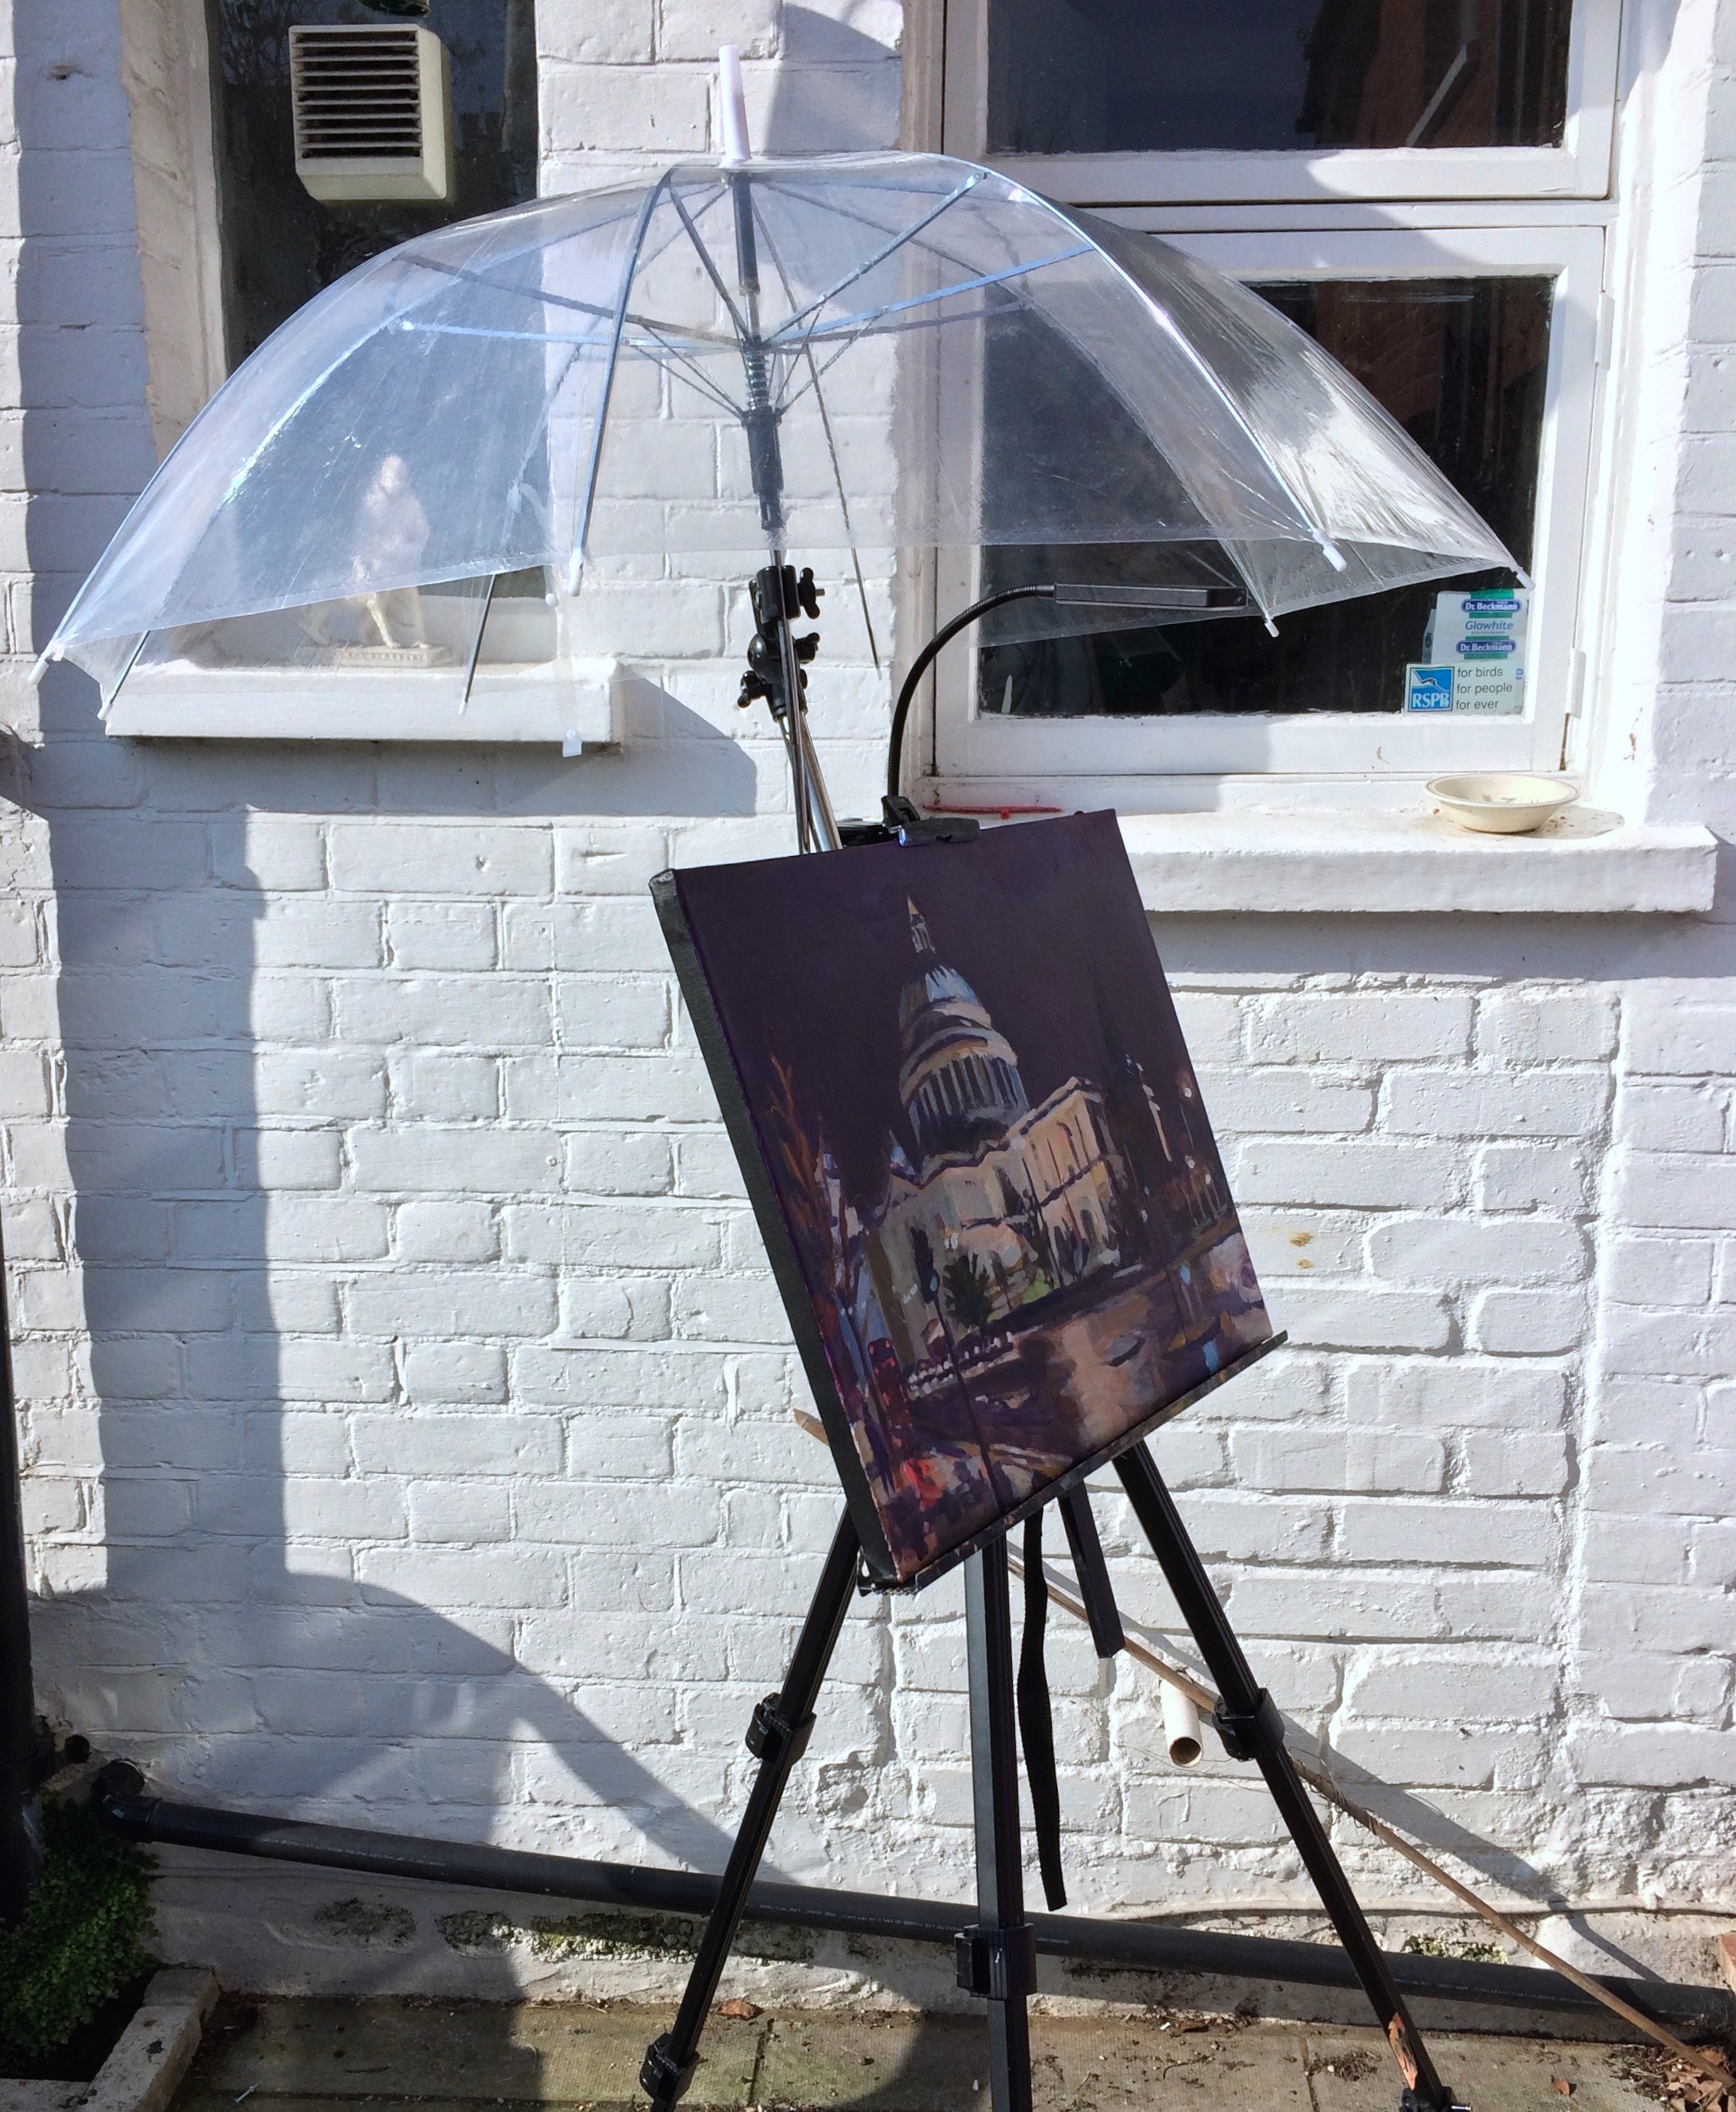 Umbrella with improvised clamp arm fitted to my portable field easel. The equipment is lightweight which makes it perfect for travelling on public transport in London... but watch out for strong winds outdoors